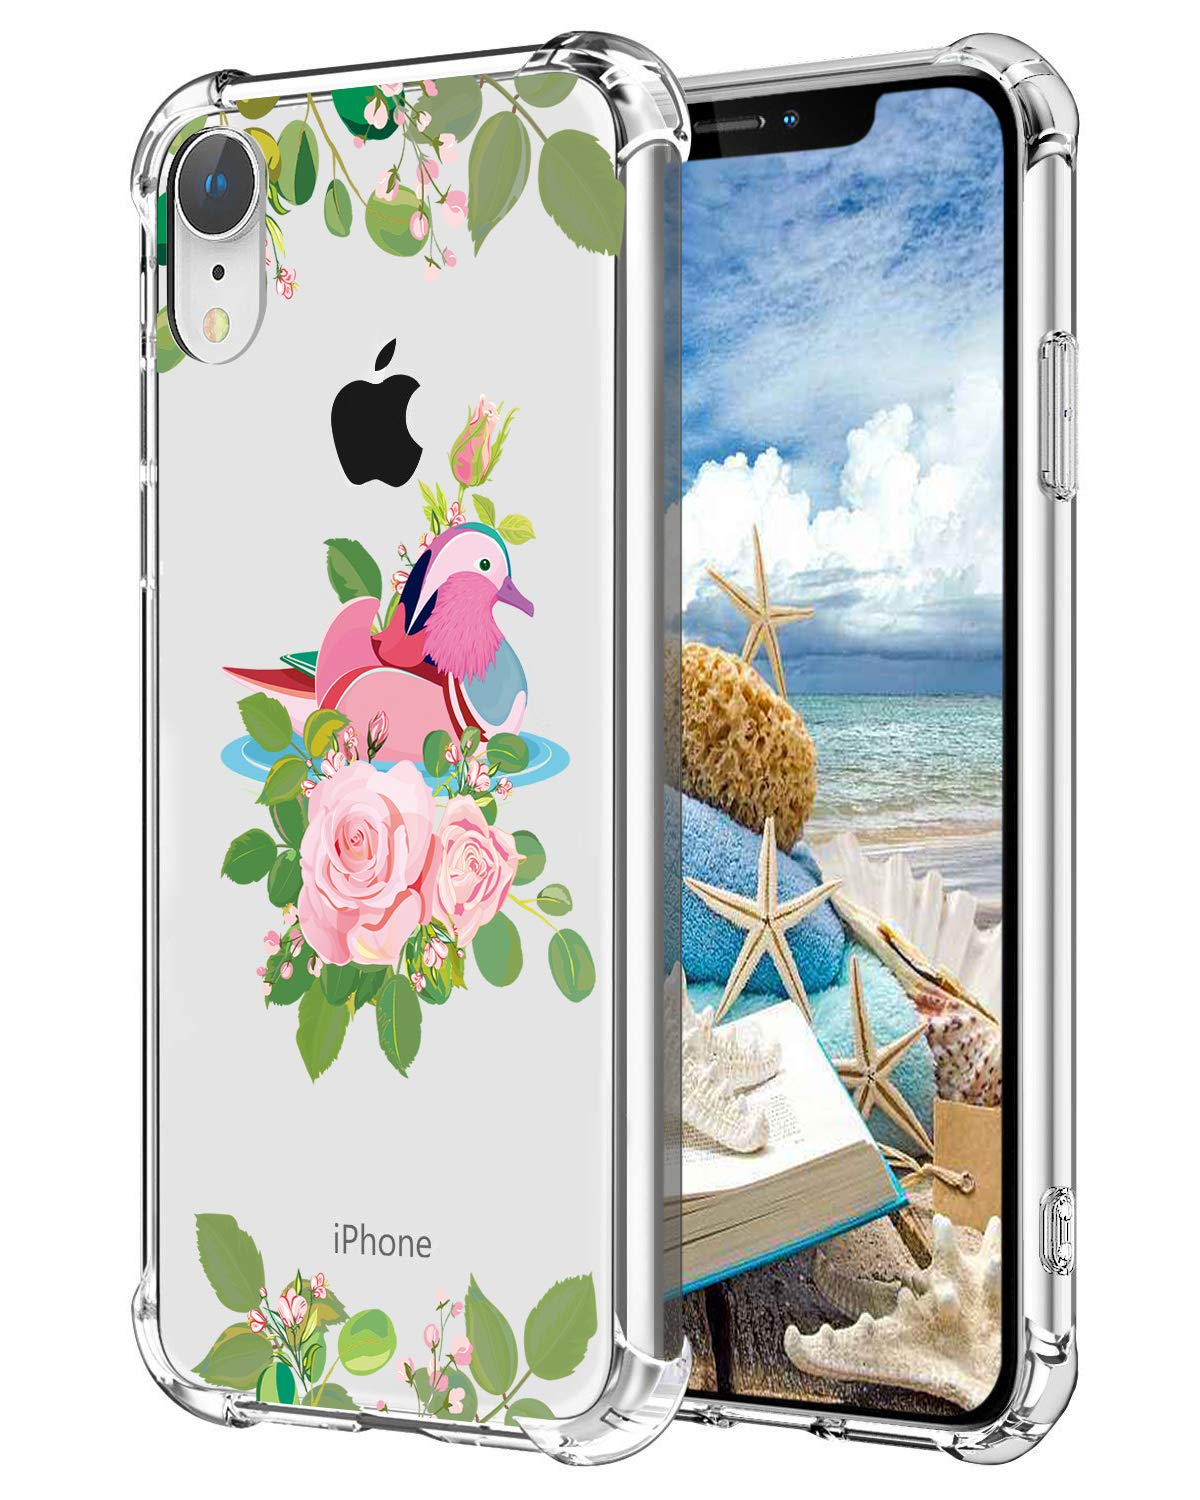 size 40 4edc0 1deaf Hepix Flowers iPhone XR Case Clear Xr Phone Cases with Birds, Protective  Slim Flexible Soft TPU Xr Phone Cover with Reinforced Bumpers Anti-Scratch  ...